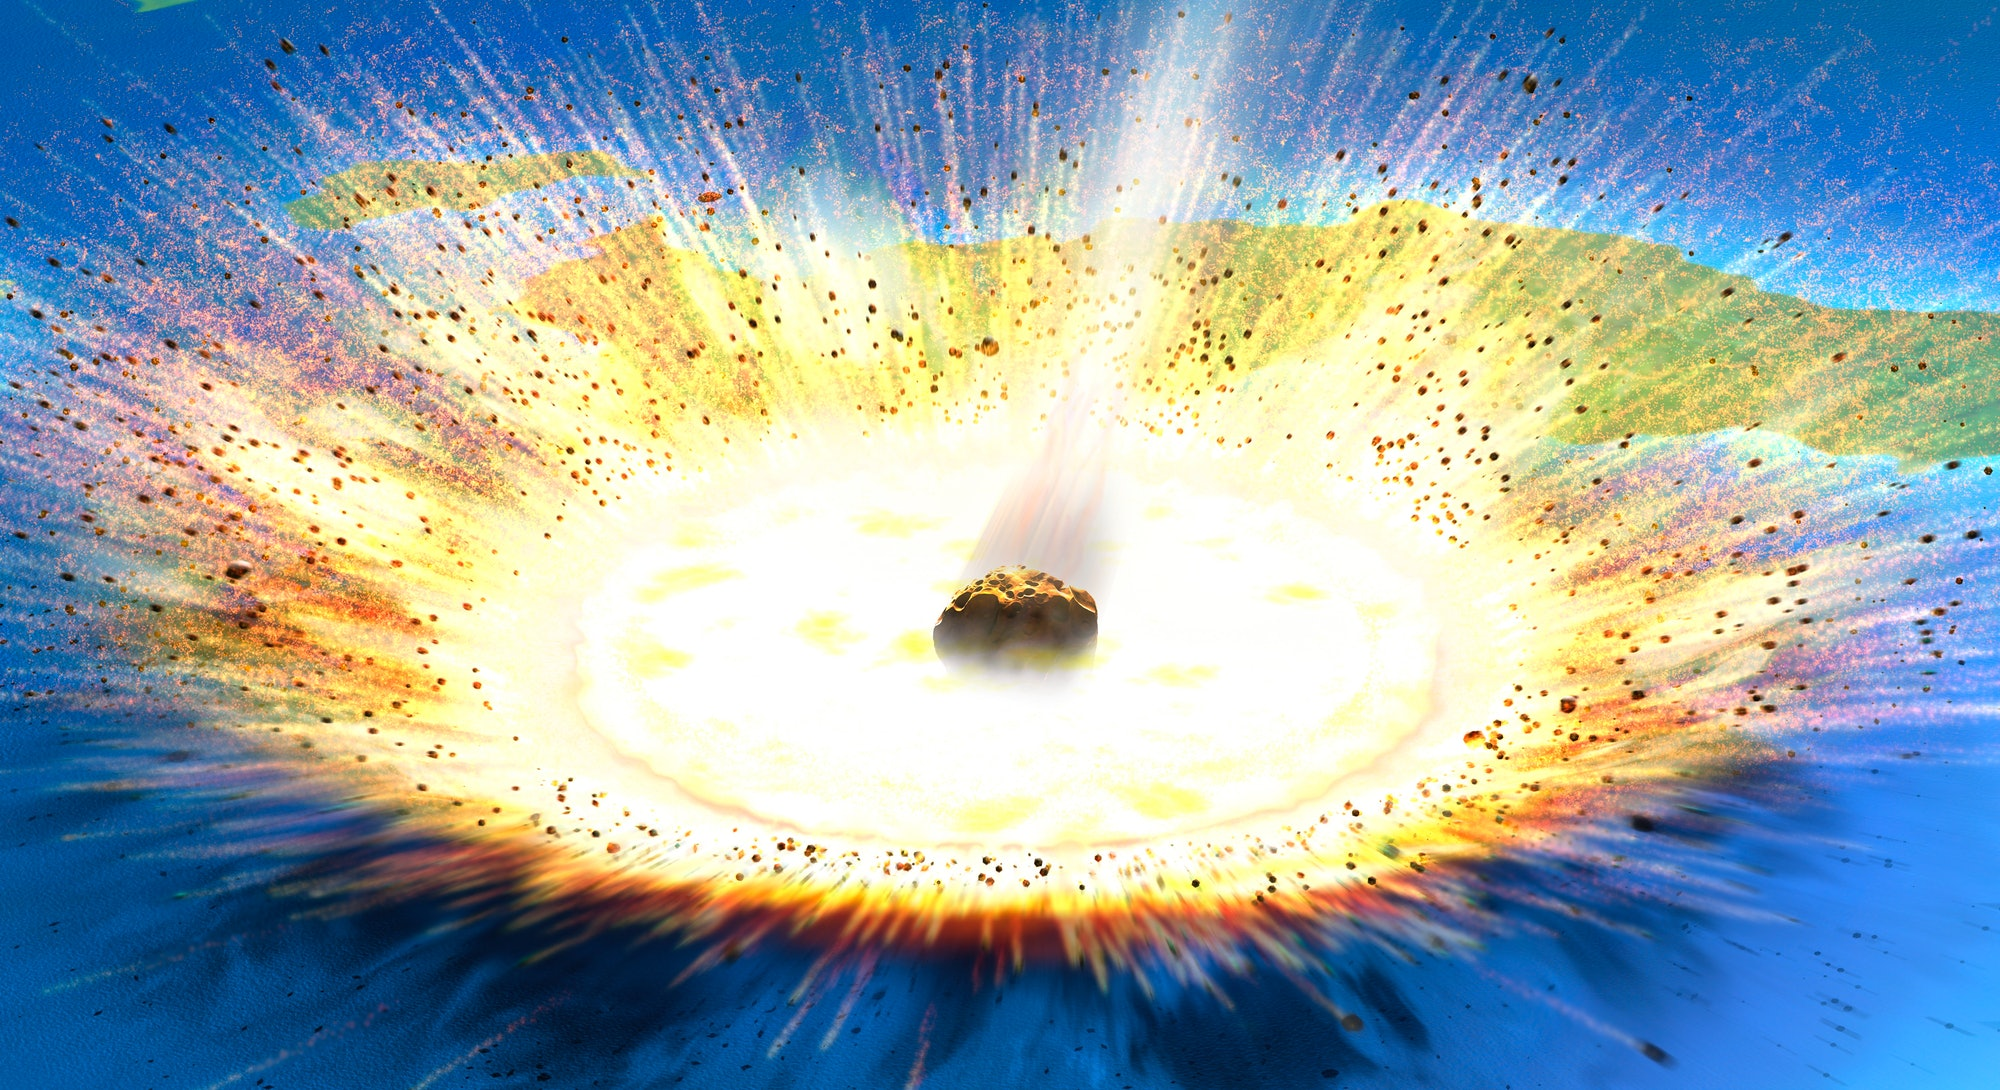 Asteroid impact. Illustration of a large asteroid colliding with Earth on the Yucatan Peninsula in Mexico. This impact is believed to have led to the death of the dinosaurs some 65 million years ago. The impact formed the Chicxulub crater, which is around 200 kilometres wide. The impact would have thrown trillions of tons of dust into the atmosphere, cooling the Earth's climate significantly, which may have been responsible for the mass extinction. A layer of iridium- rich rock, known as the K pg boundary, is thought to be the remnants of the impact debris.